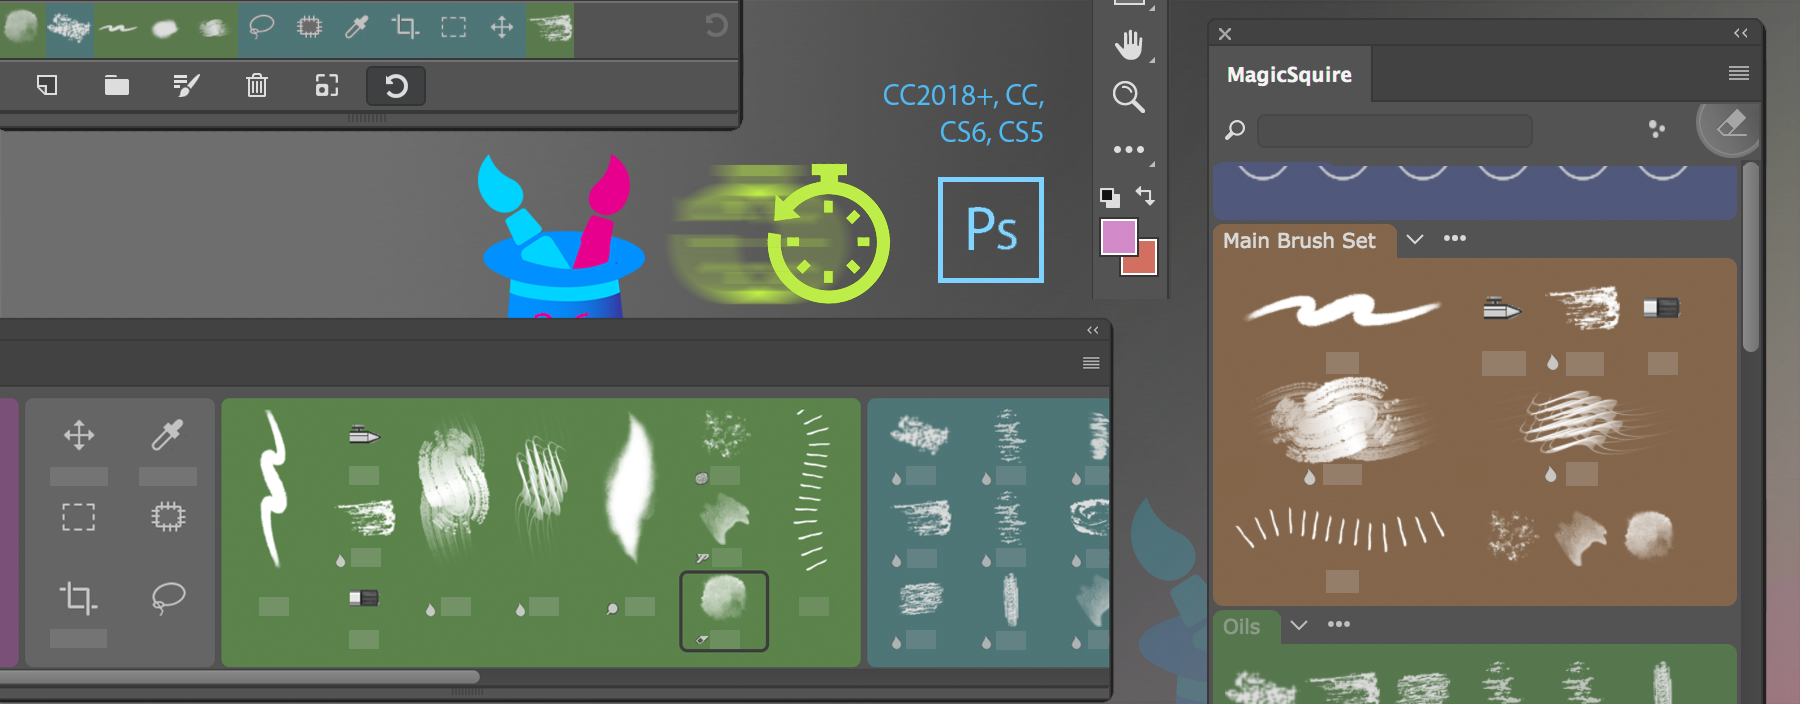 Brush group organizer for Photoshop - MagicSquire panel — polycount